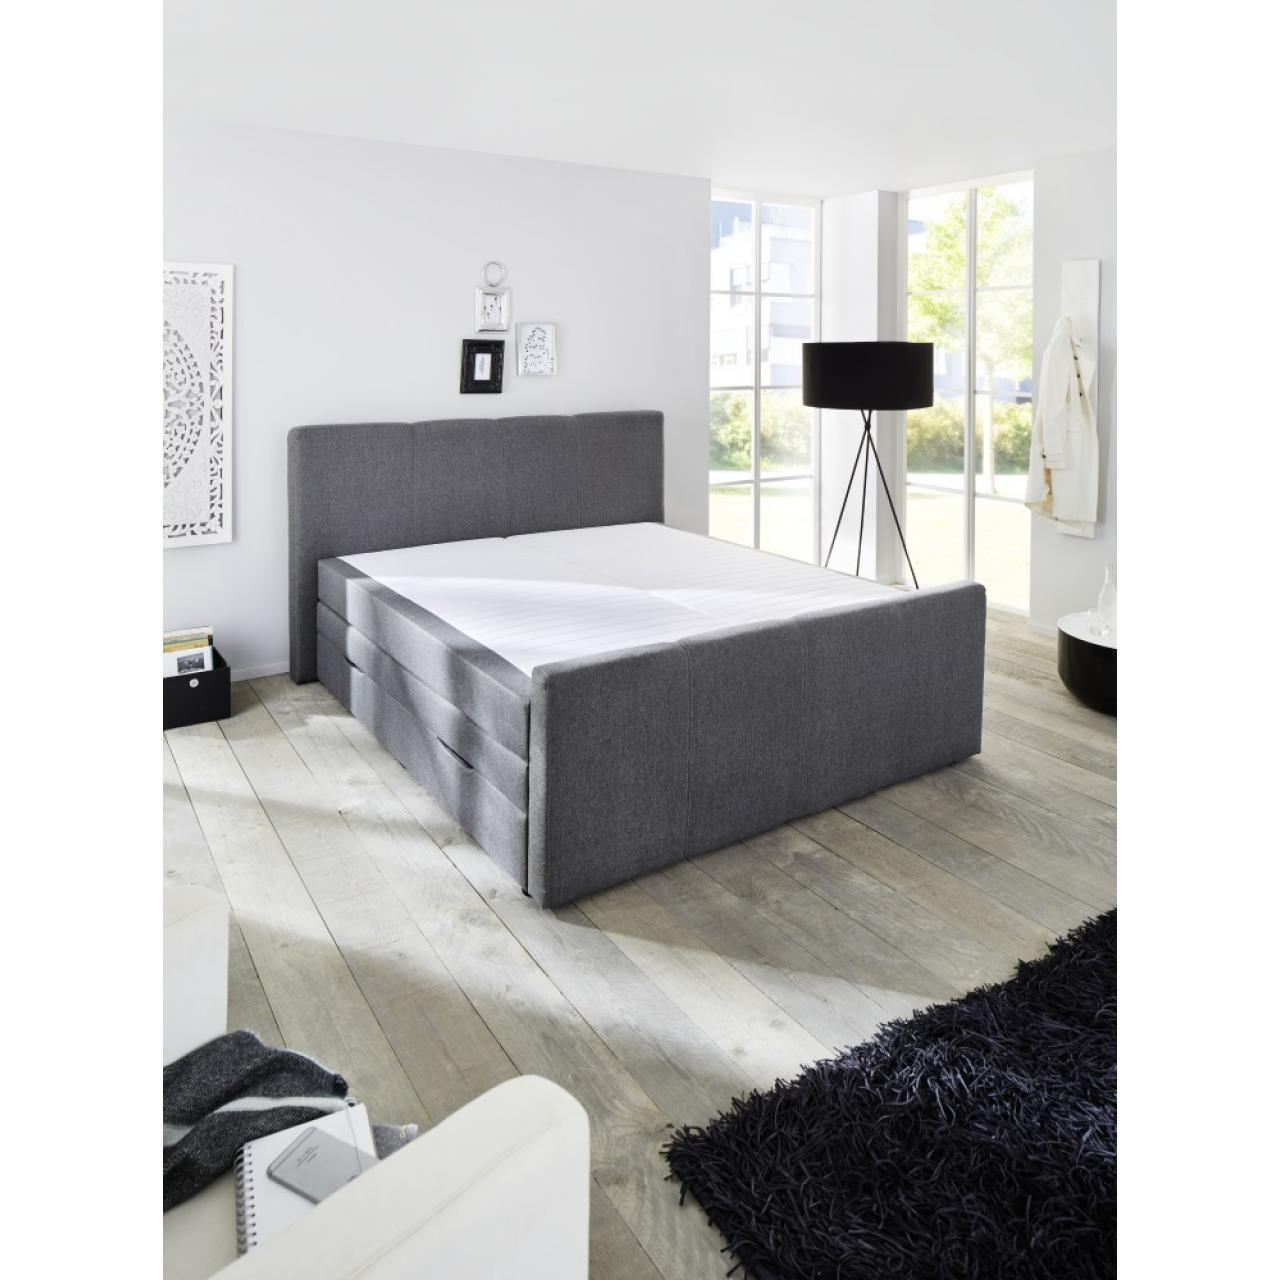 betten online kaufen m bel j hnichen center gmbh m bel j hnichen center gmbh. Black Bedroom Furniture Sets. Home Design Ideas